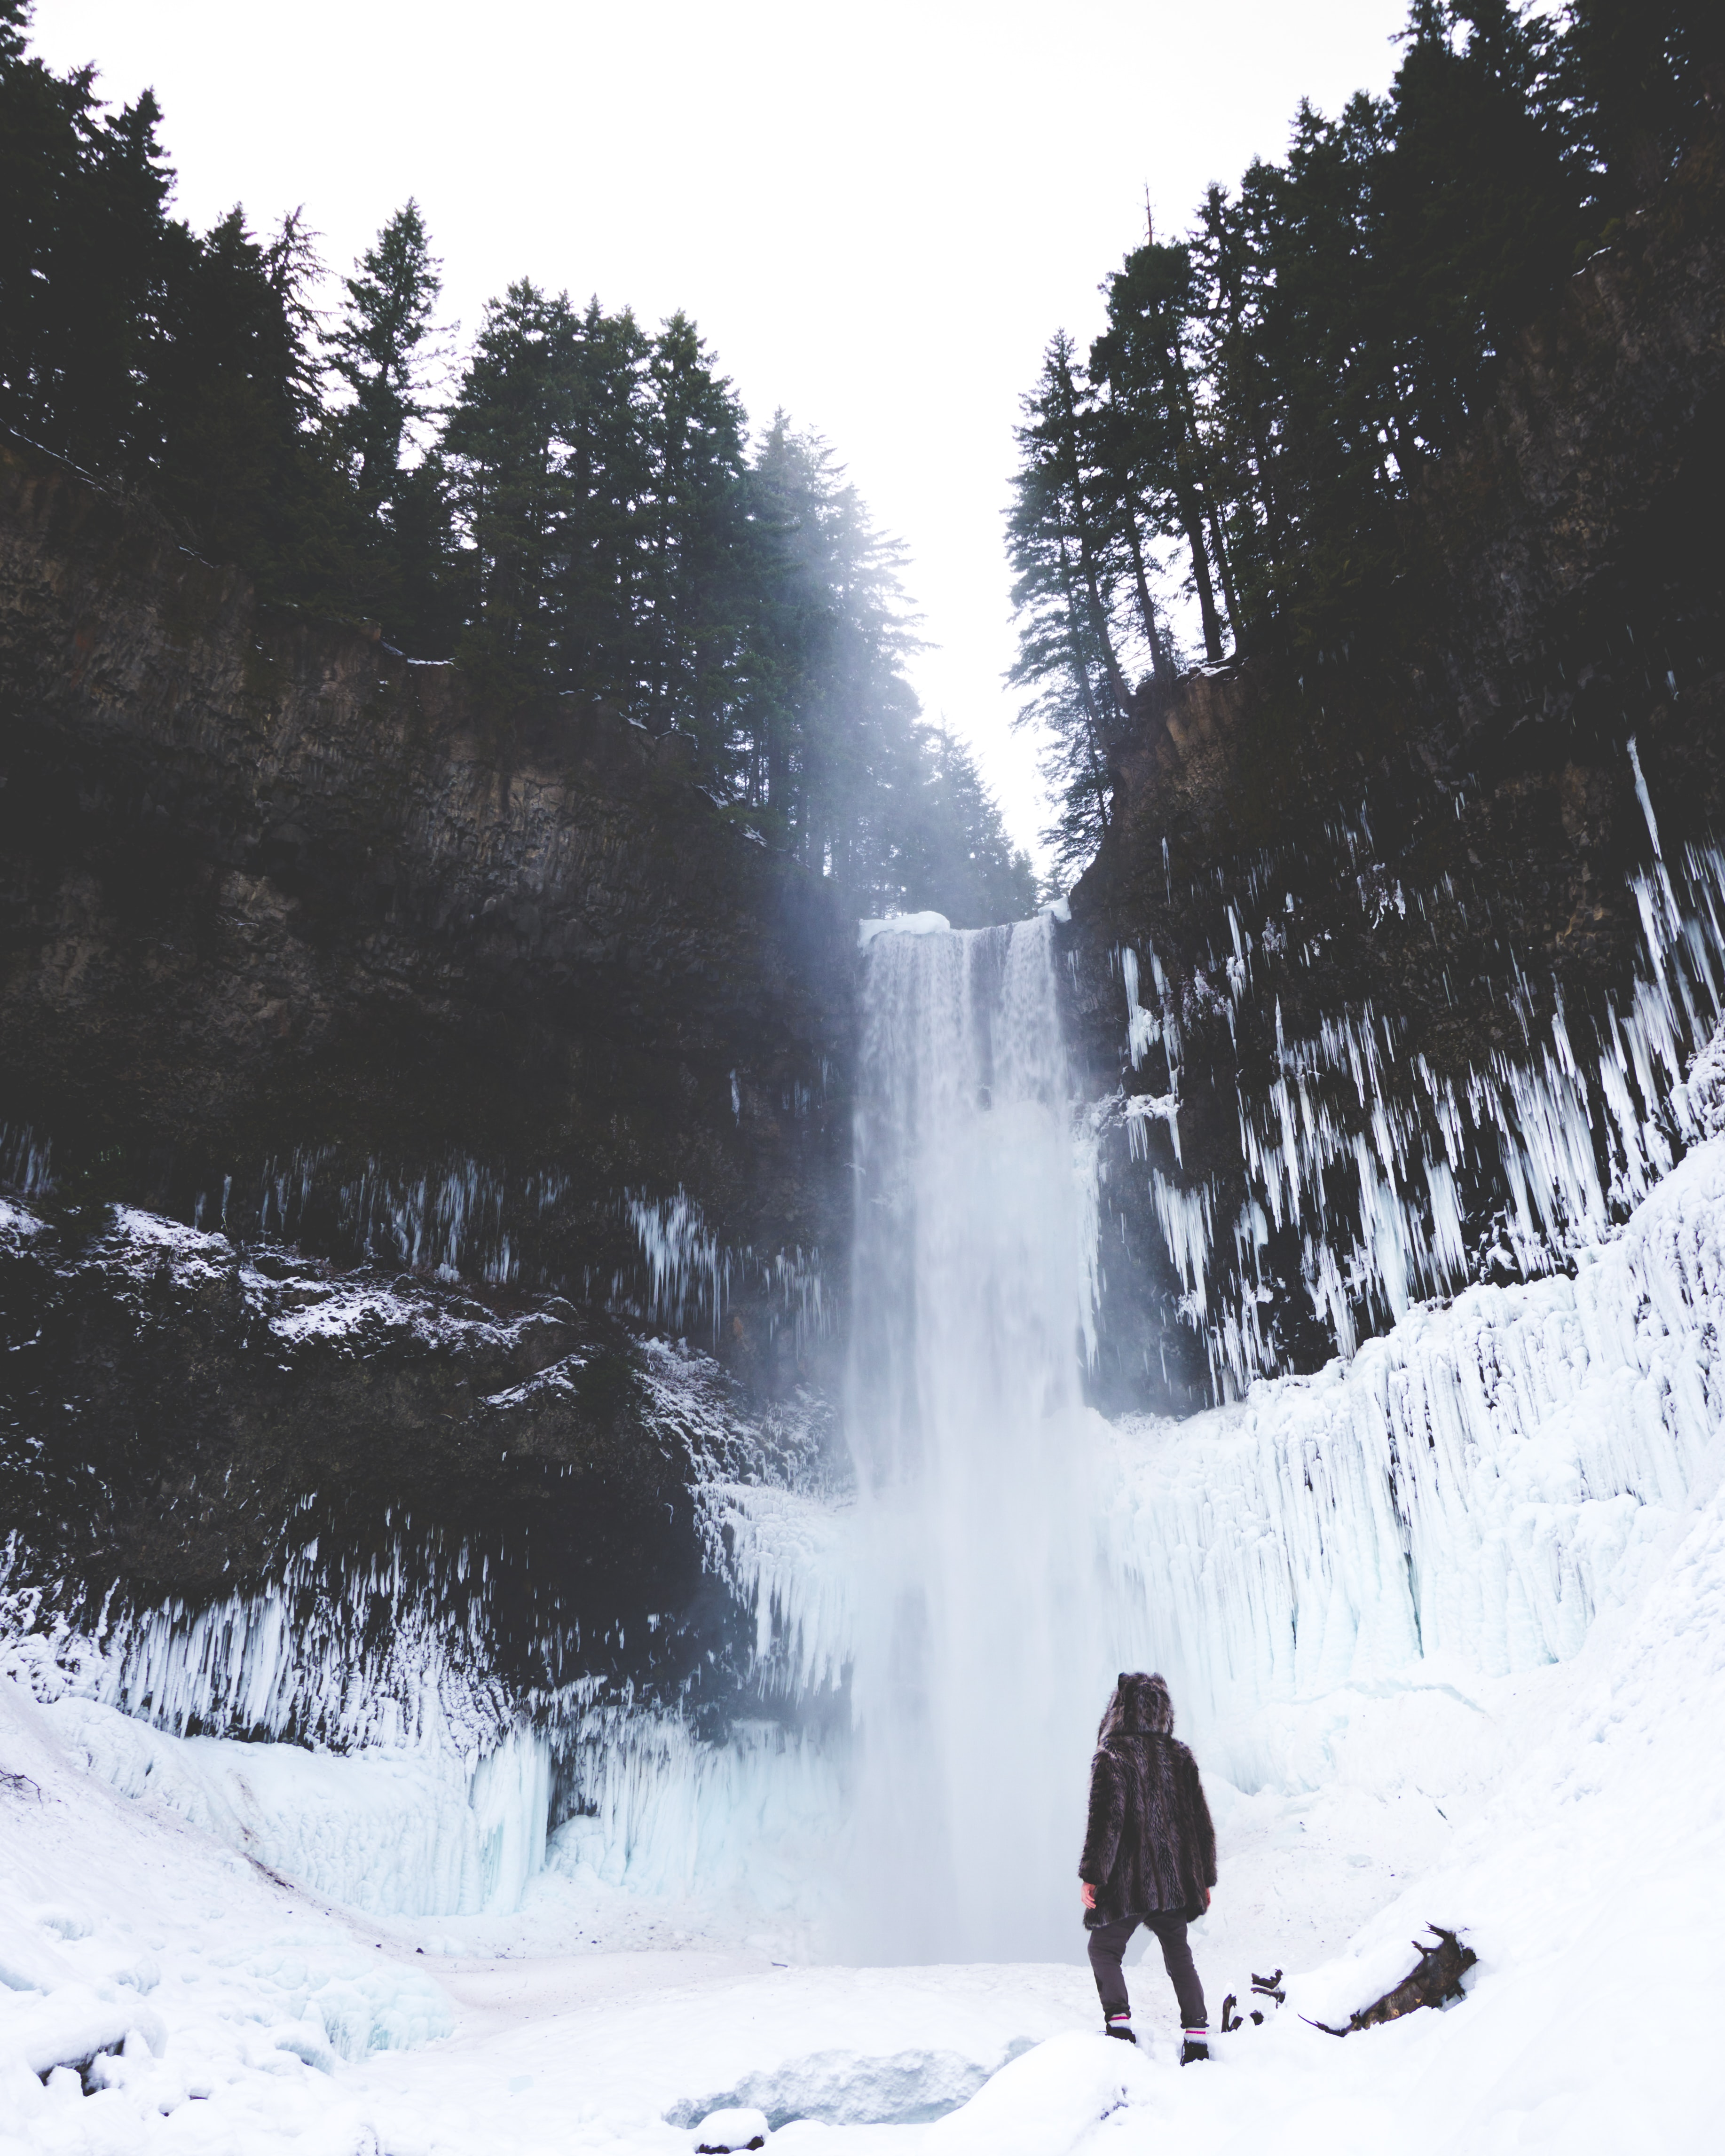 A person staring at the bottom of Brandywine Falls during a snowy winter season